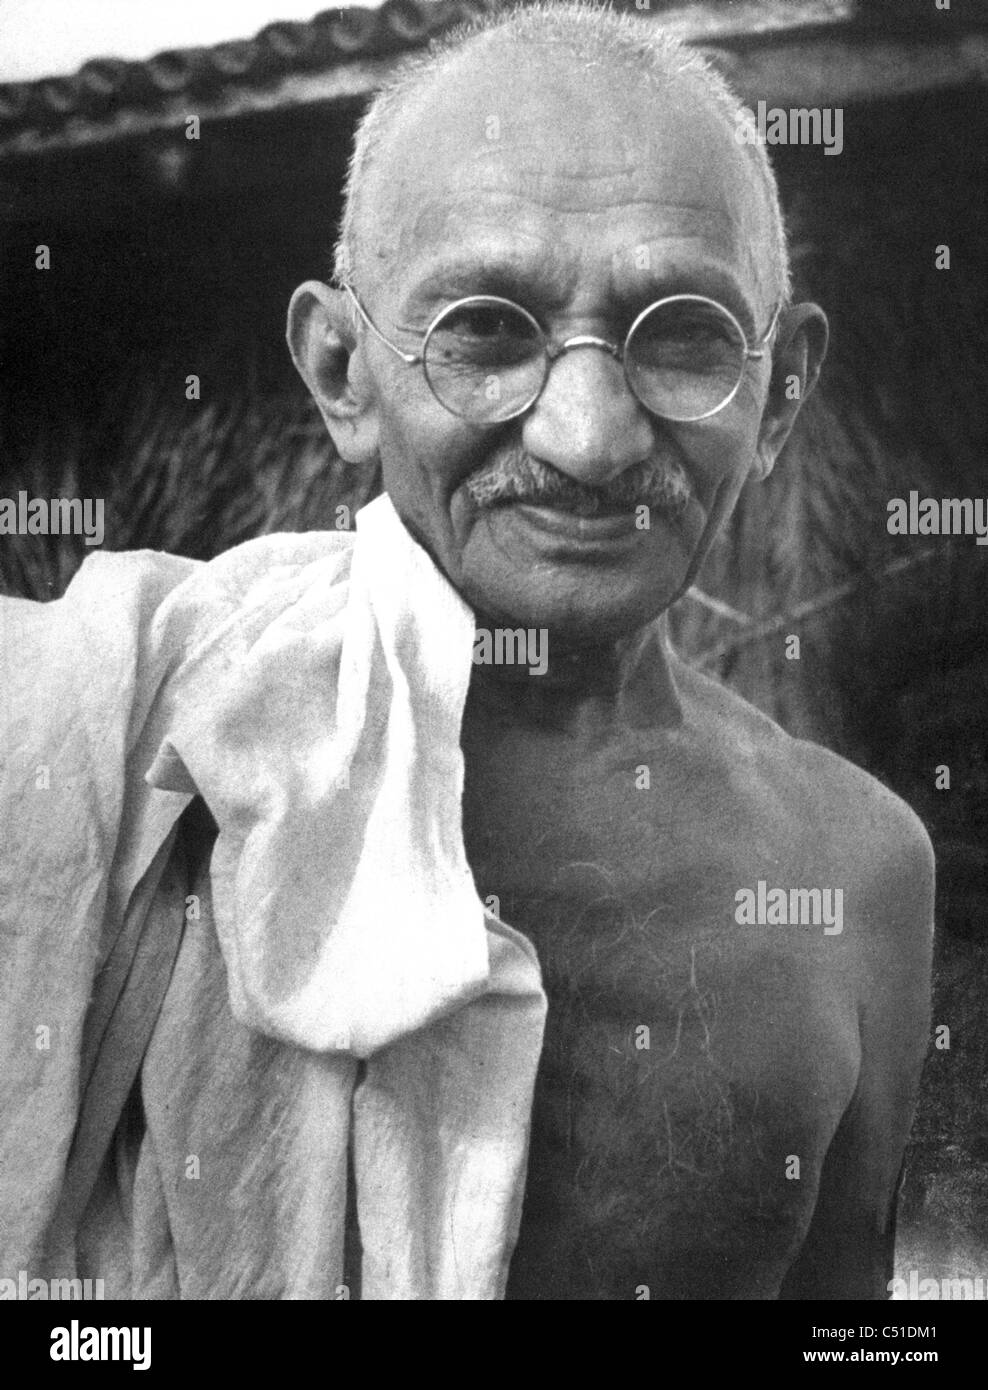 MOHENDRAS GANDHI (1869-1948)  Indian political and ideological leader about 1940 - Stock Image